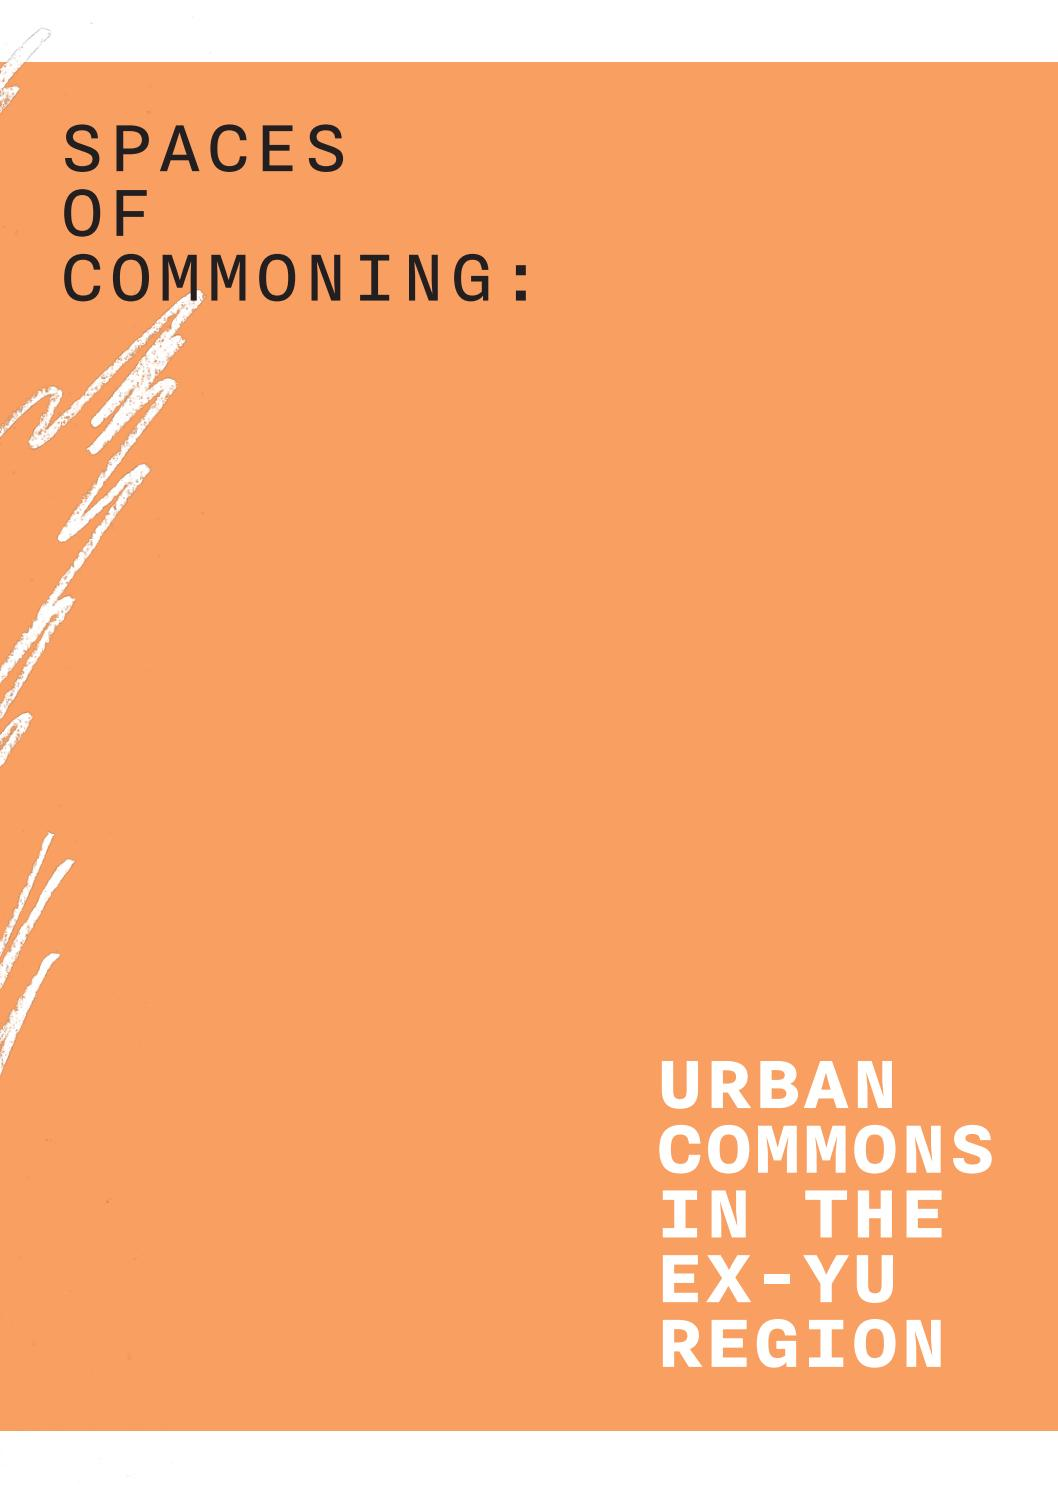 SPACES OF COMMONING: URBAN COMMONS IN THE EX-YU REGION